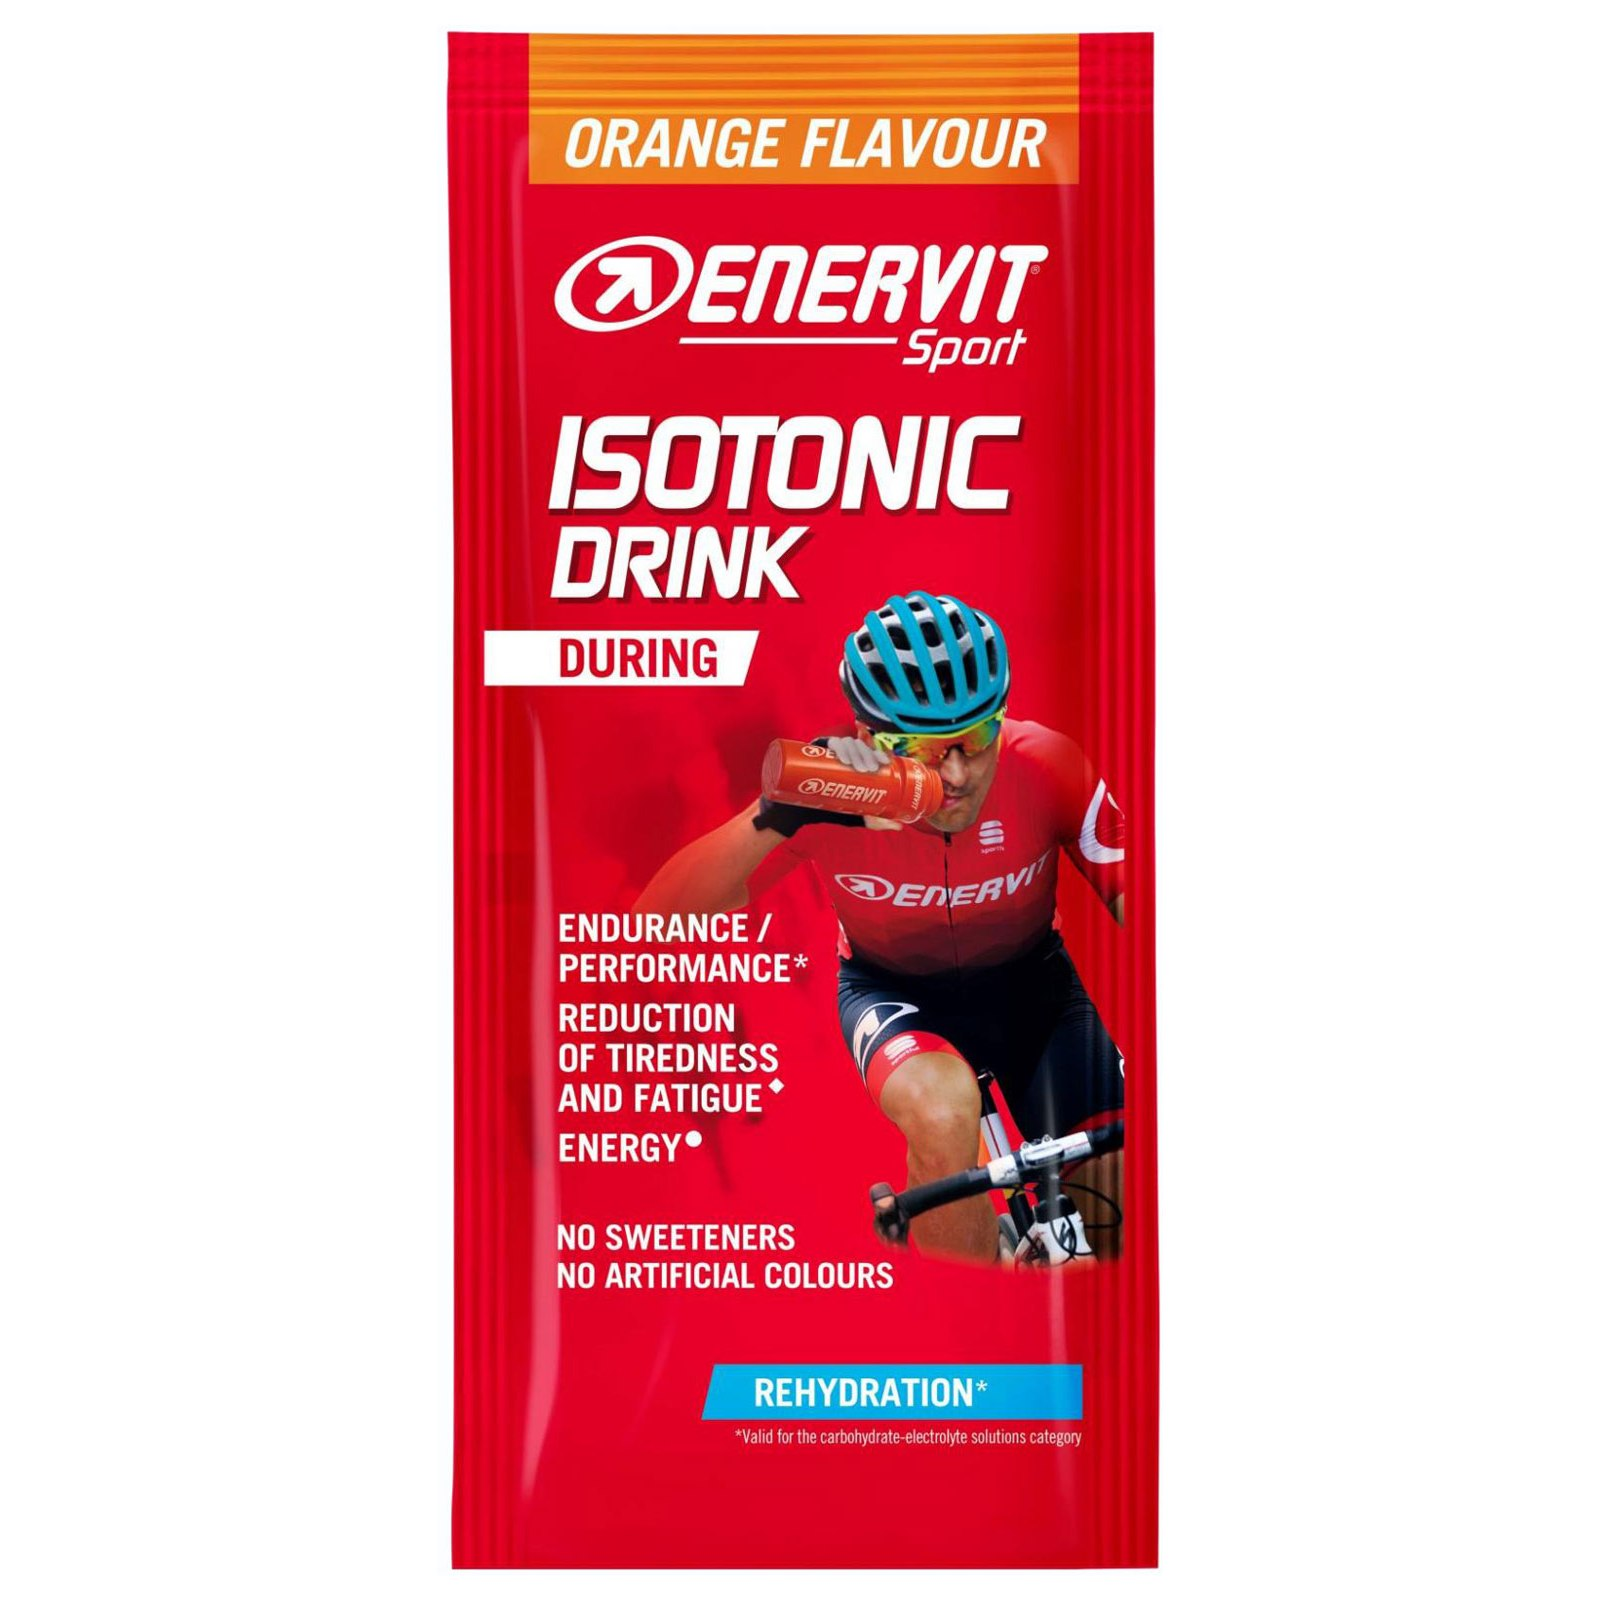 Enervit Isotonic Drink - Carbohydrate Electrolyte Beverage Powder - 15g